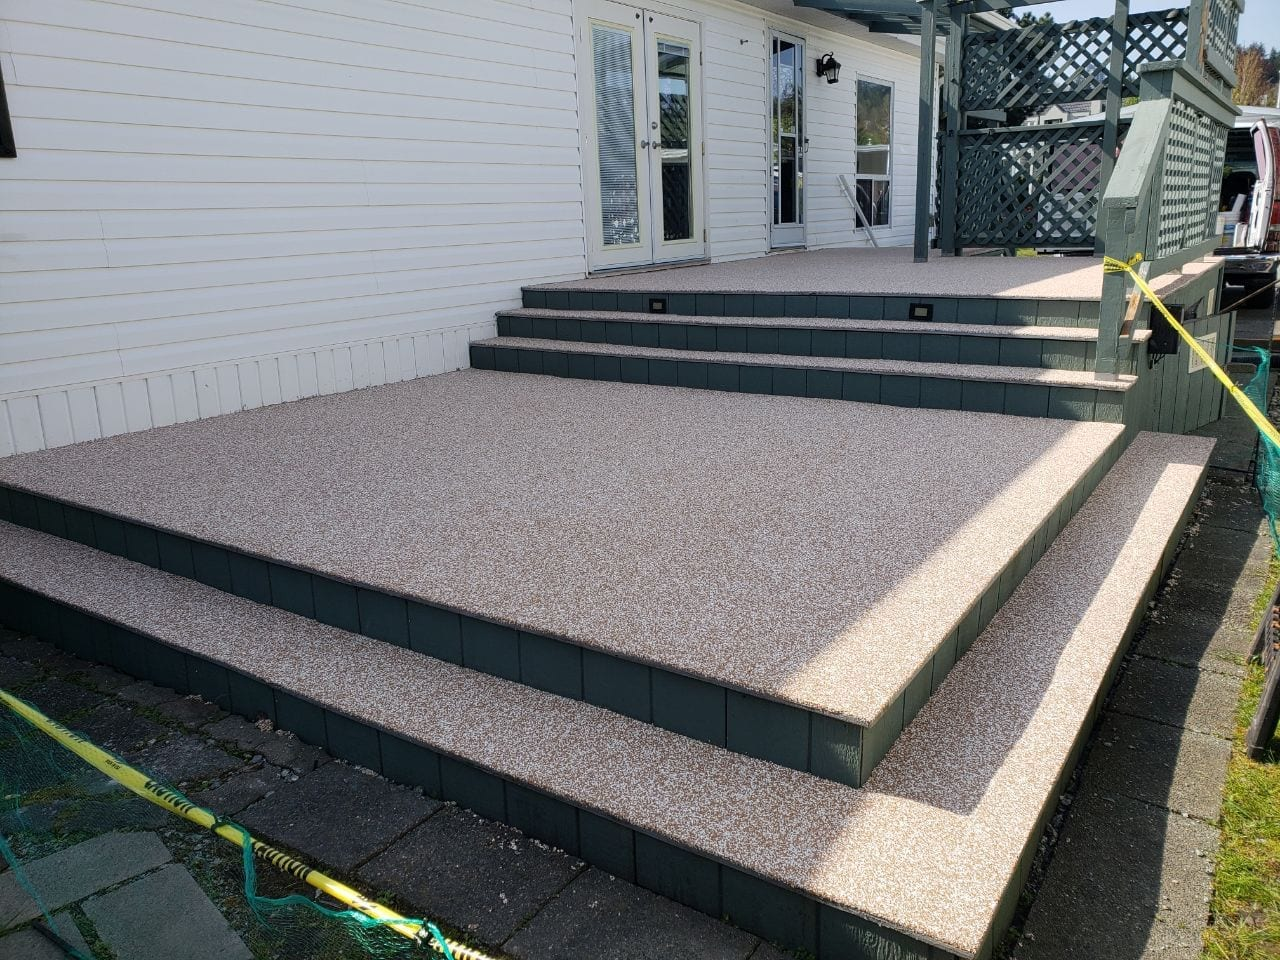 Deck after rubber surfacing